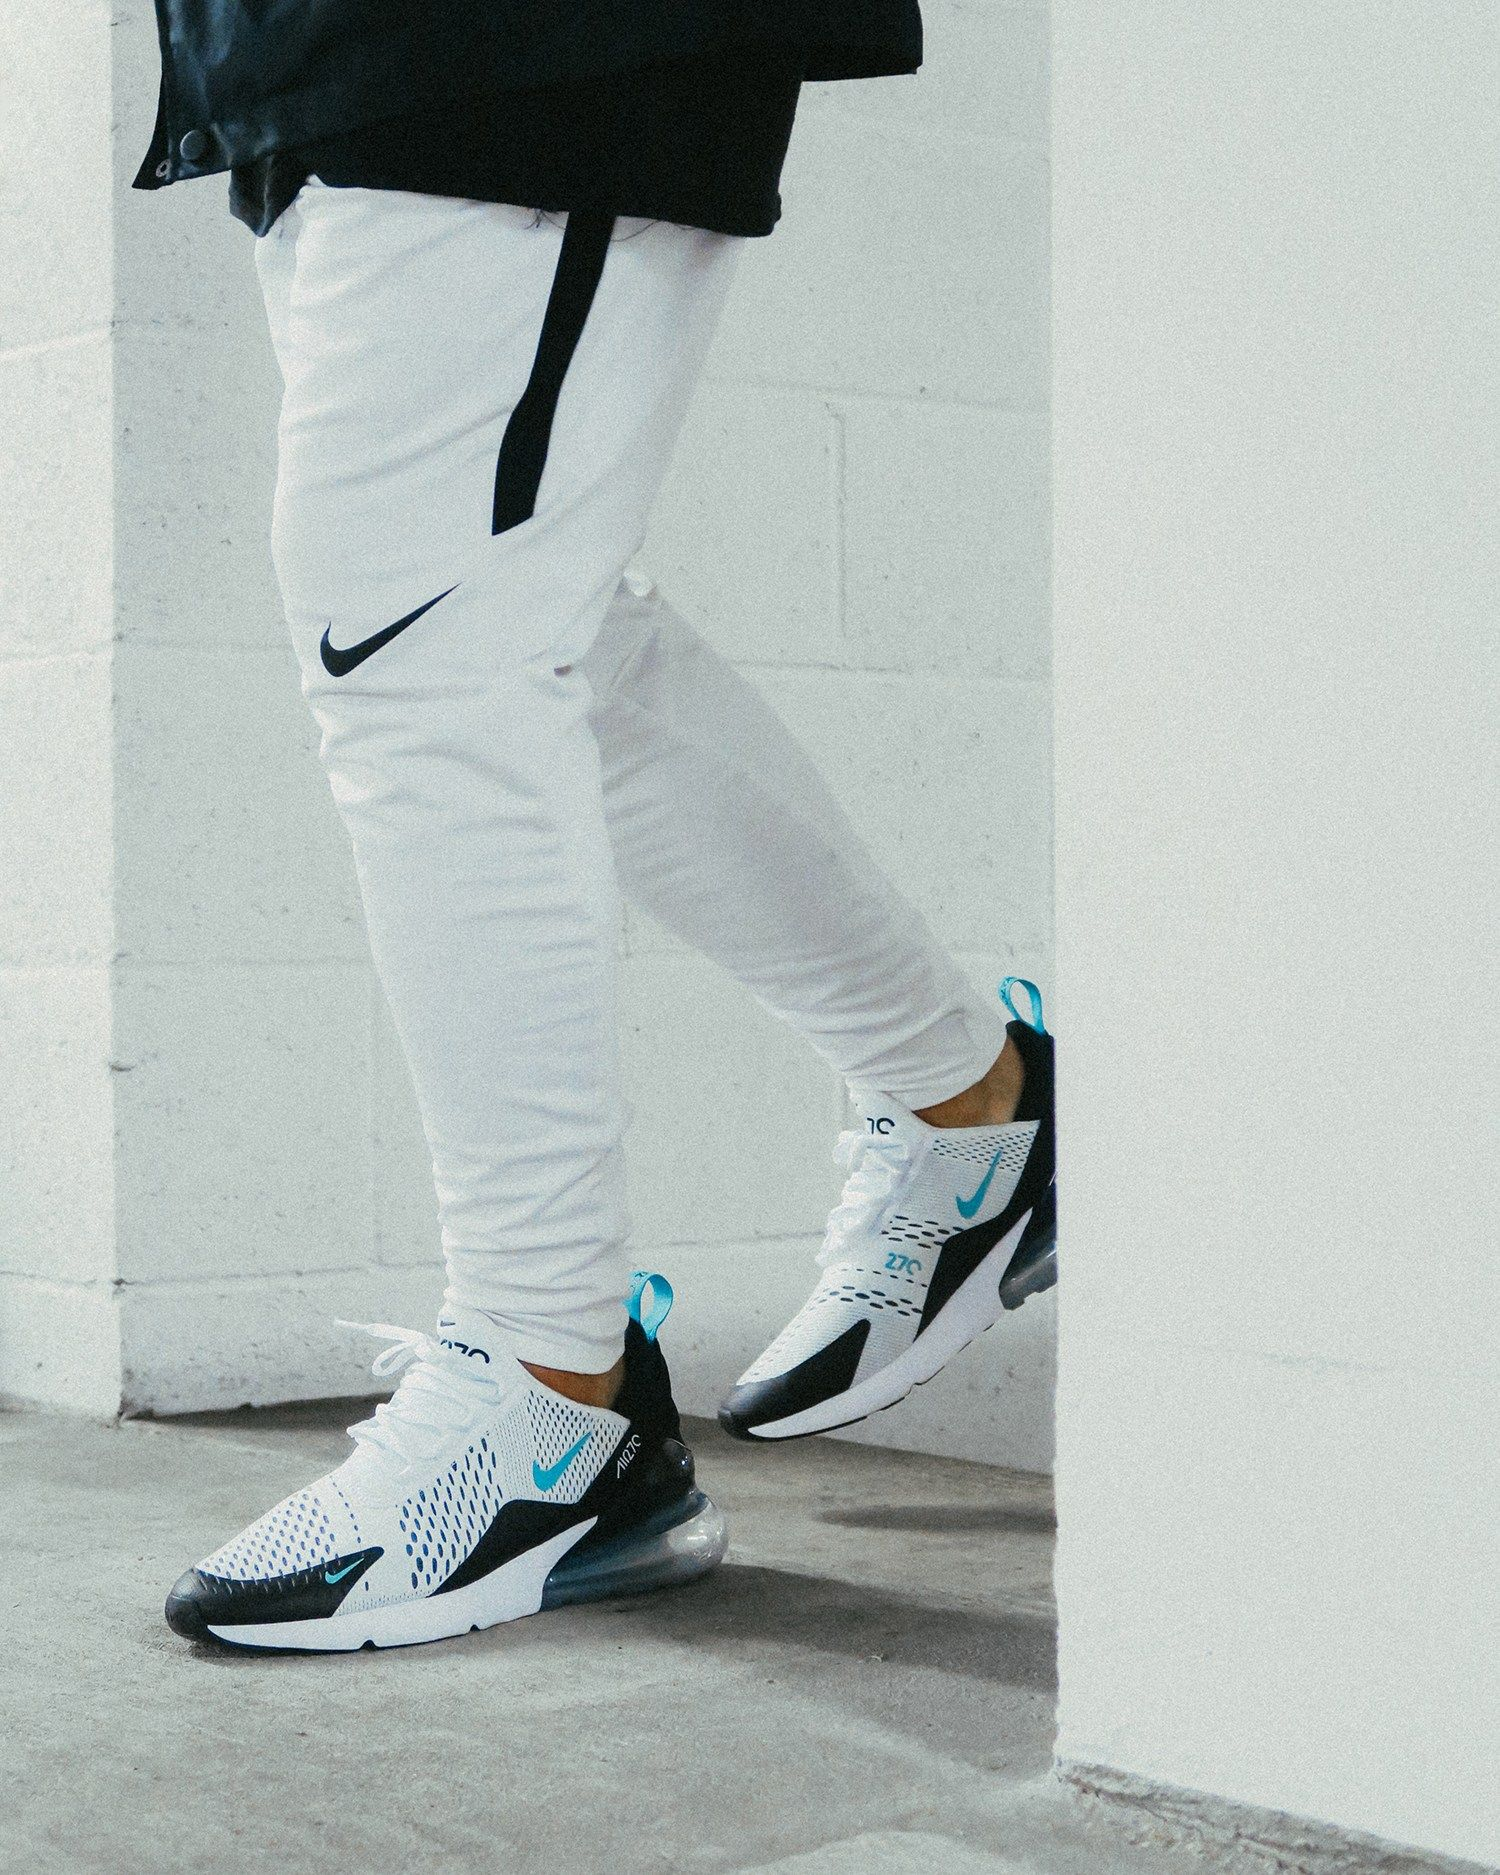 Nike Air Max 270 Dusty Cactus Release Date